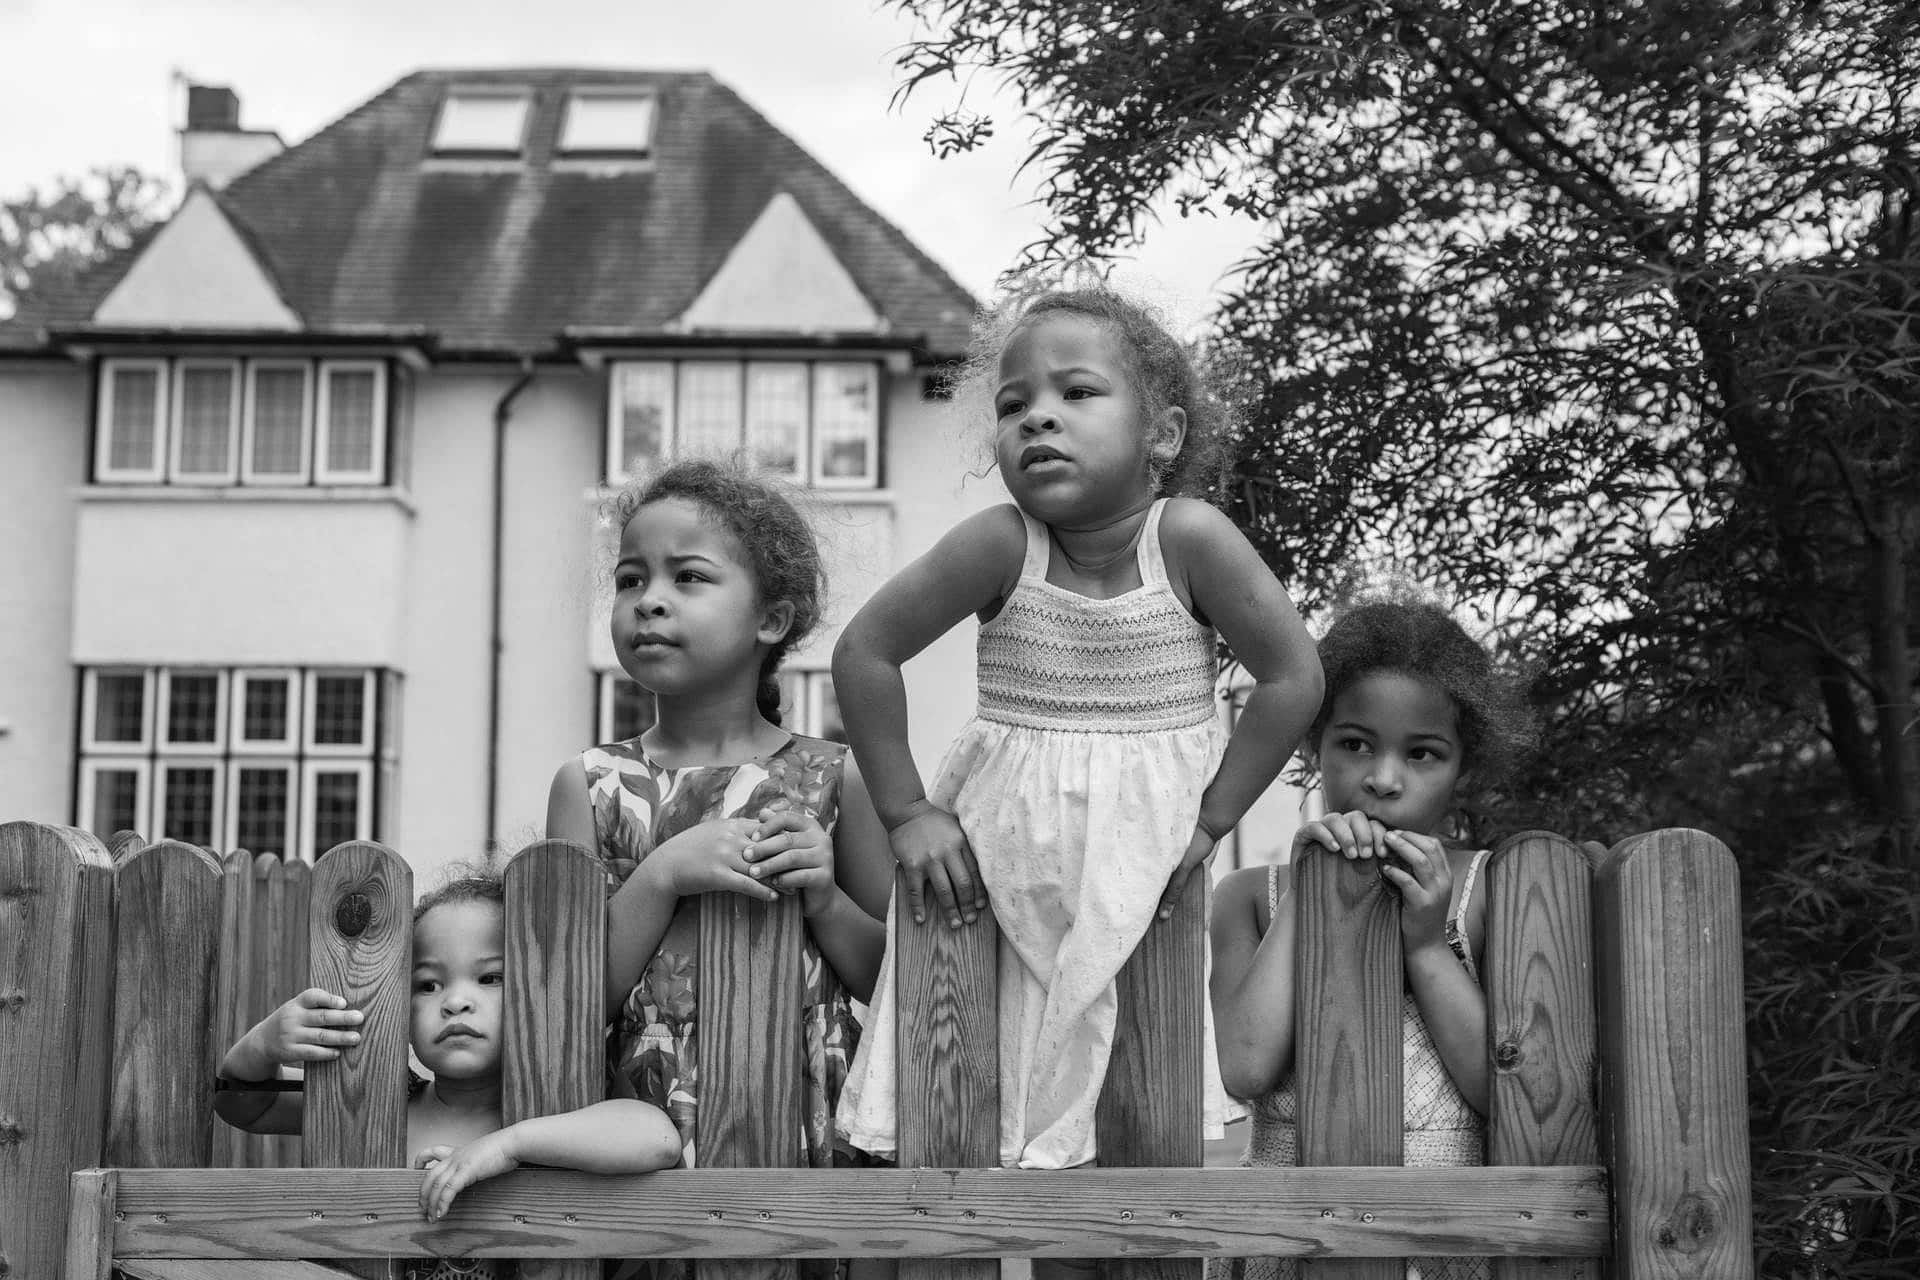 four sisters looking over the fence in their home in hampton, london